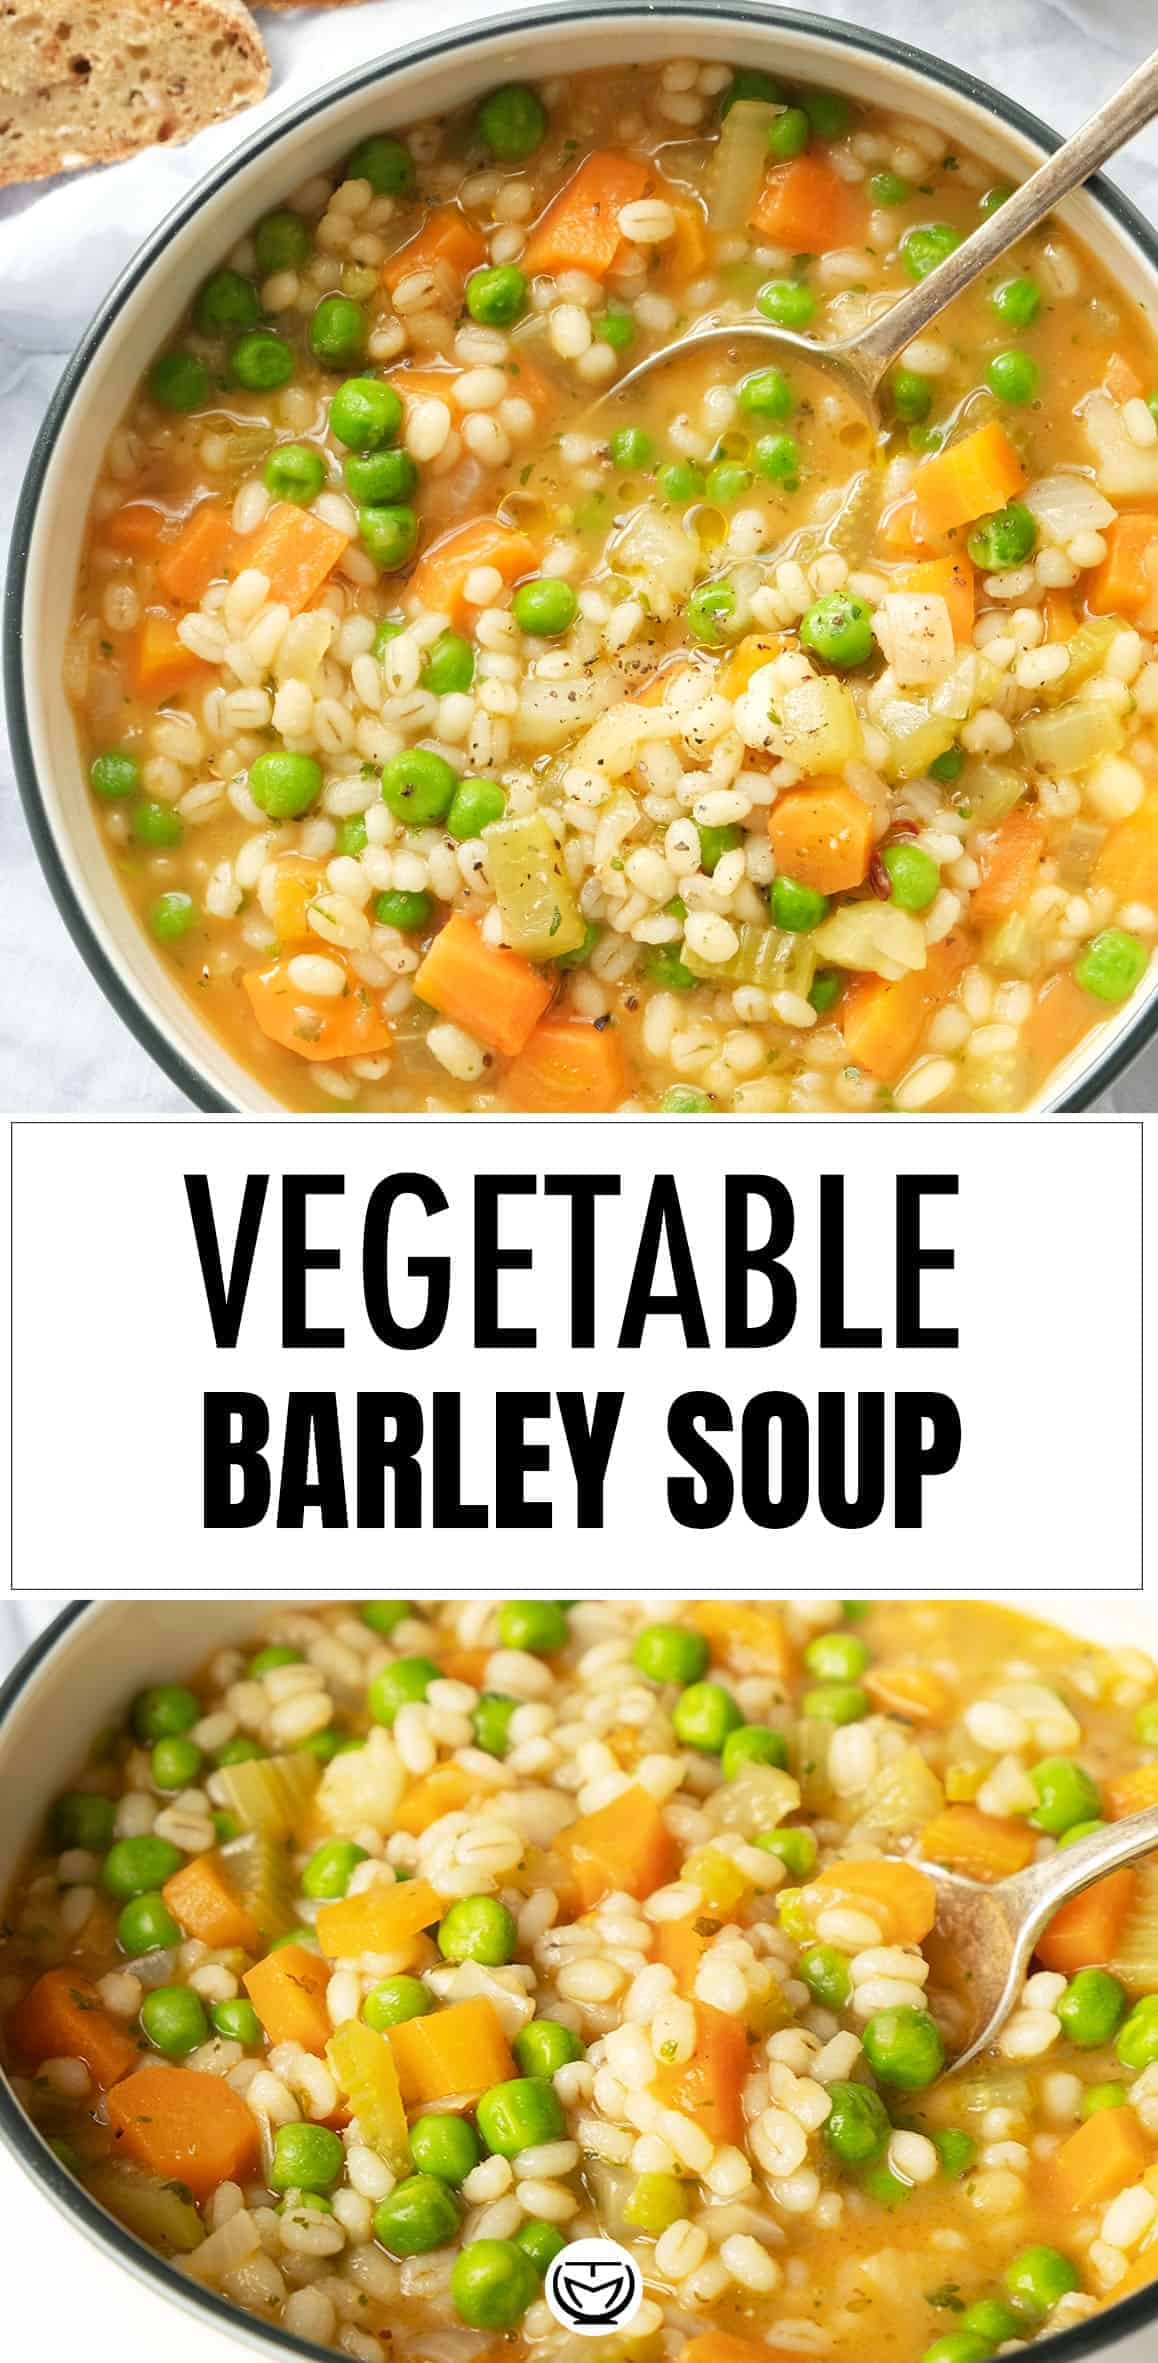 Let the homey flavors speak for themselves with this hearty and simply delicious vegetable barley soup. It's easy to make, healthy, packed with vegetables, and you can't stop eating it! #barleysoup #barleyrecipe #souprecipes #souprecipeshealthy #veganrecipes #vegetarianrecipes